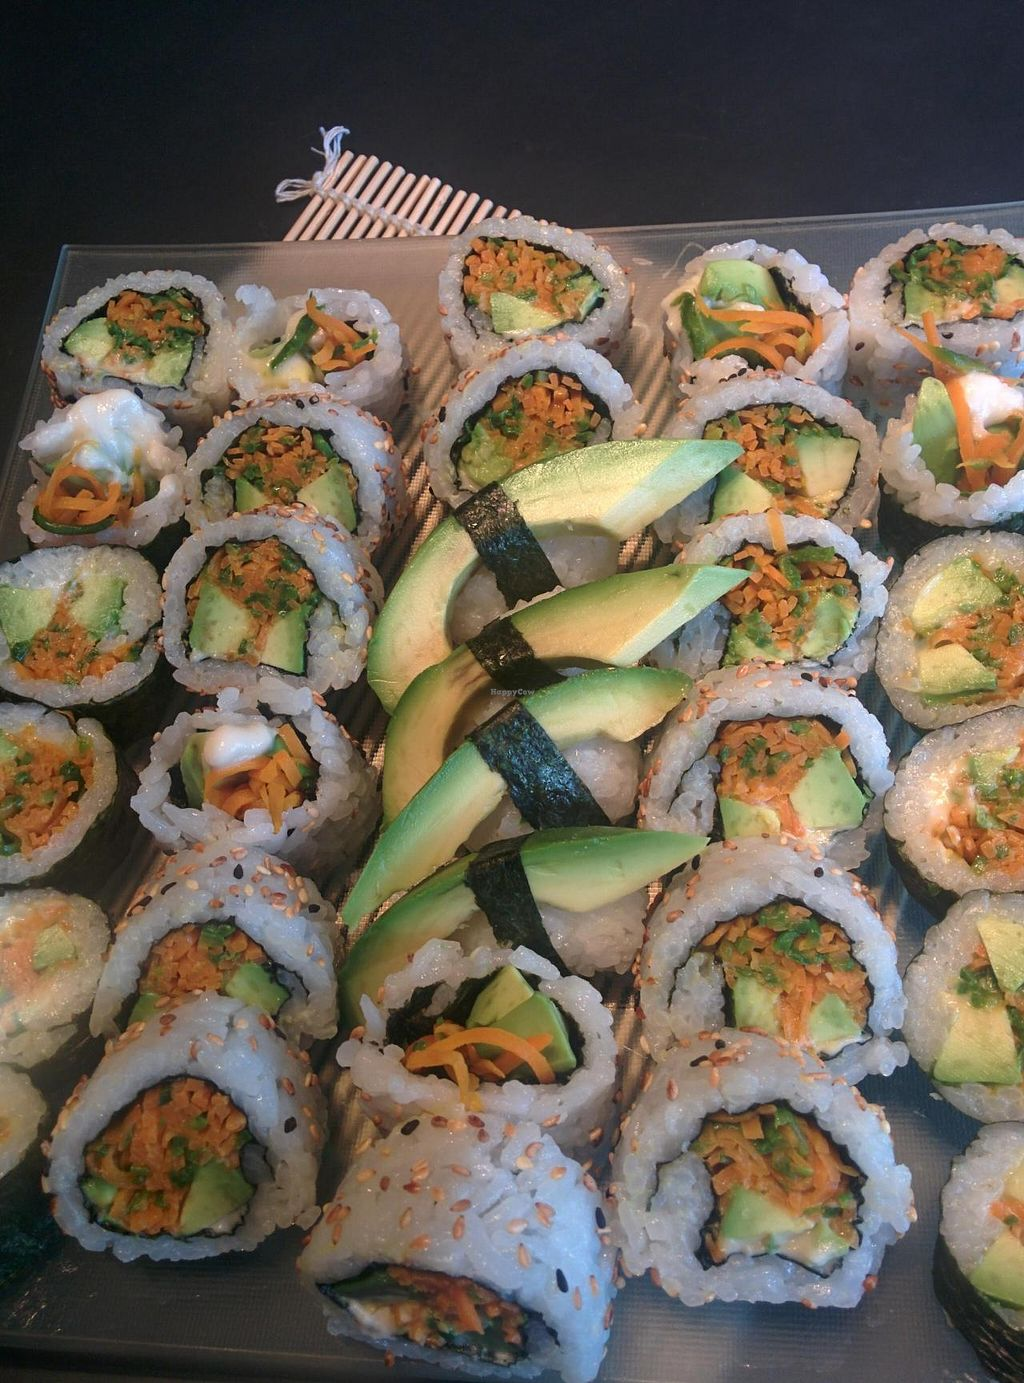 "Photo of CLOSED: Sushi Board  by <a href=""/members/profile/VeganSoapDude"">VeganSoapDude</a> <br/>Vegan Sushi! <br/> December 10, 2014  - <a href='/contact/abuse/image/53676/87606'>Report</a>"